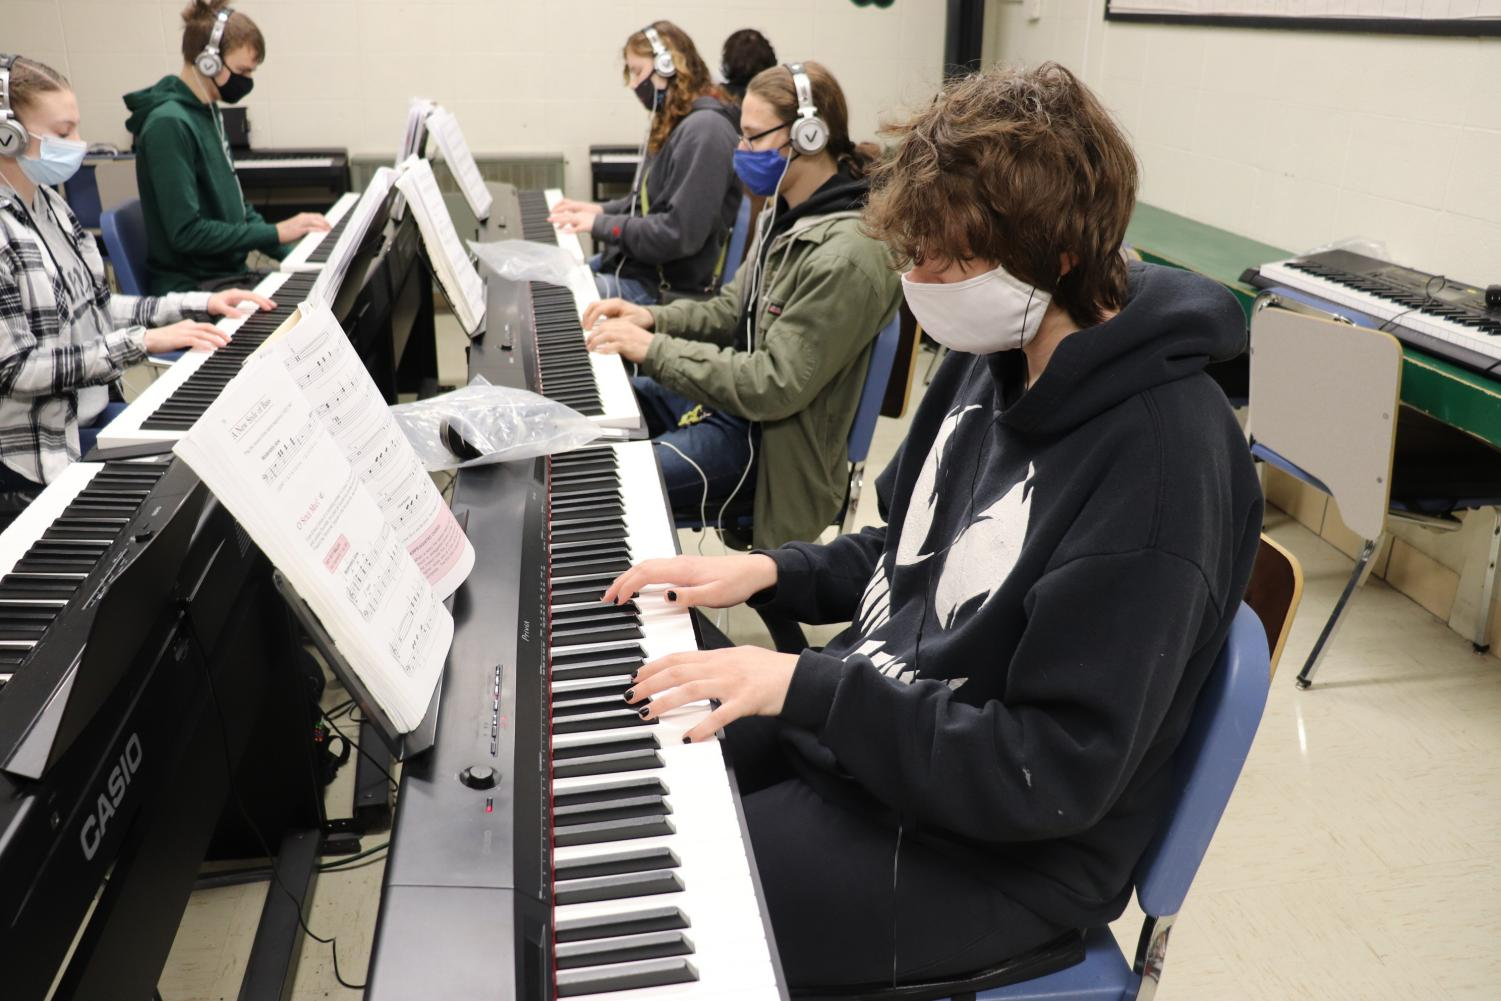 Above: Sophomores Rian Dotson, John Cawood, Jenny Jones, Reece Brazel and junior Natalie Johnson mask up to practice playing piano together.